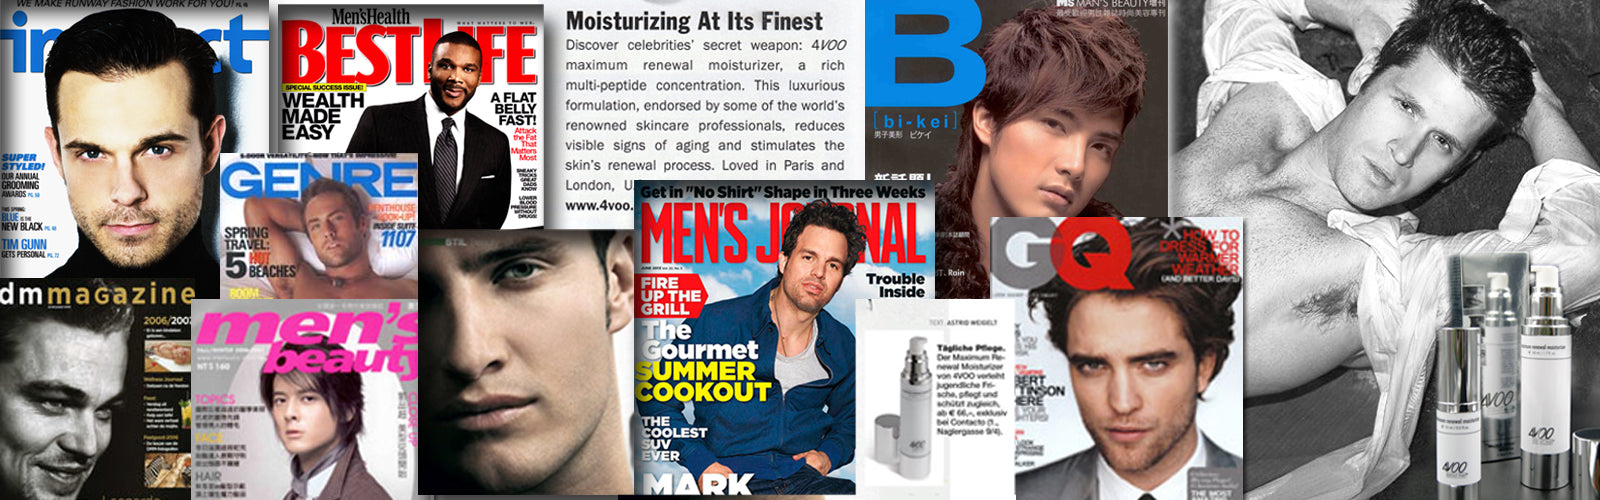 4VOO maximum renewal moisturizer recommended by press